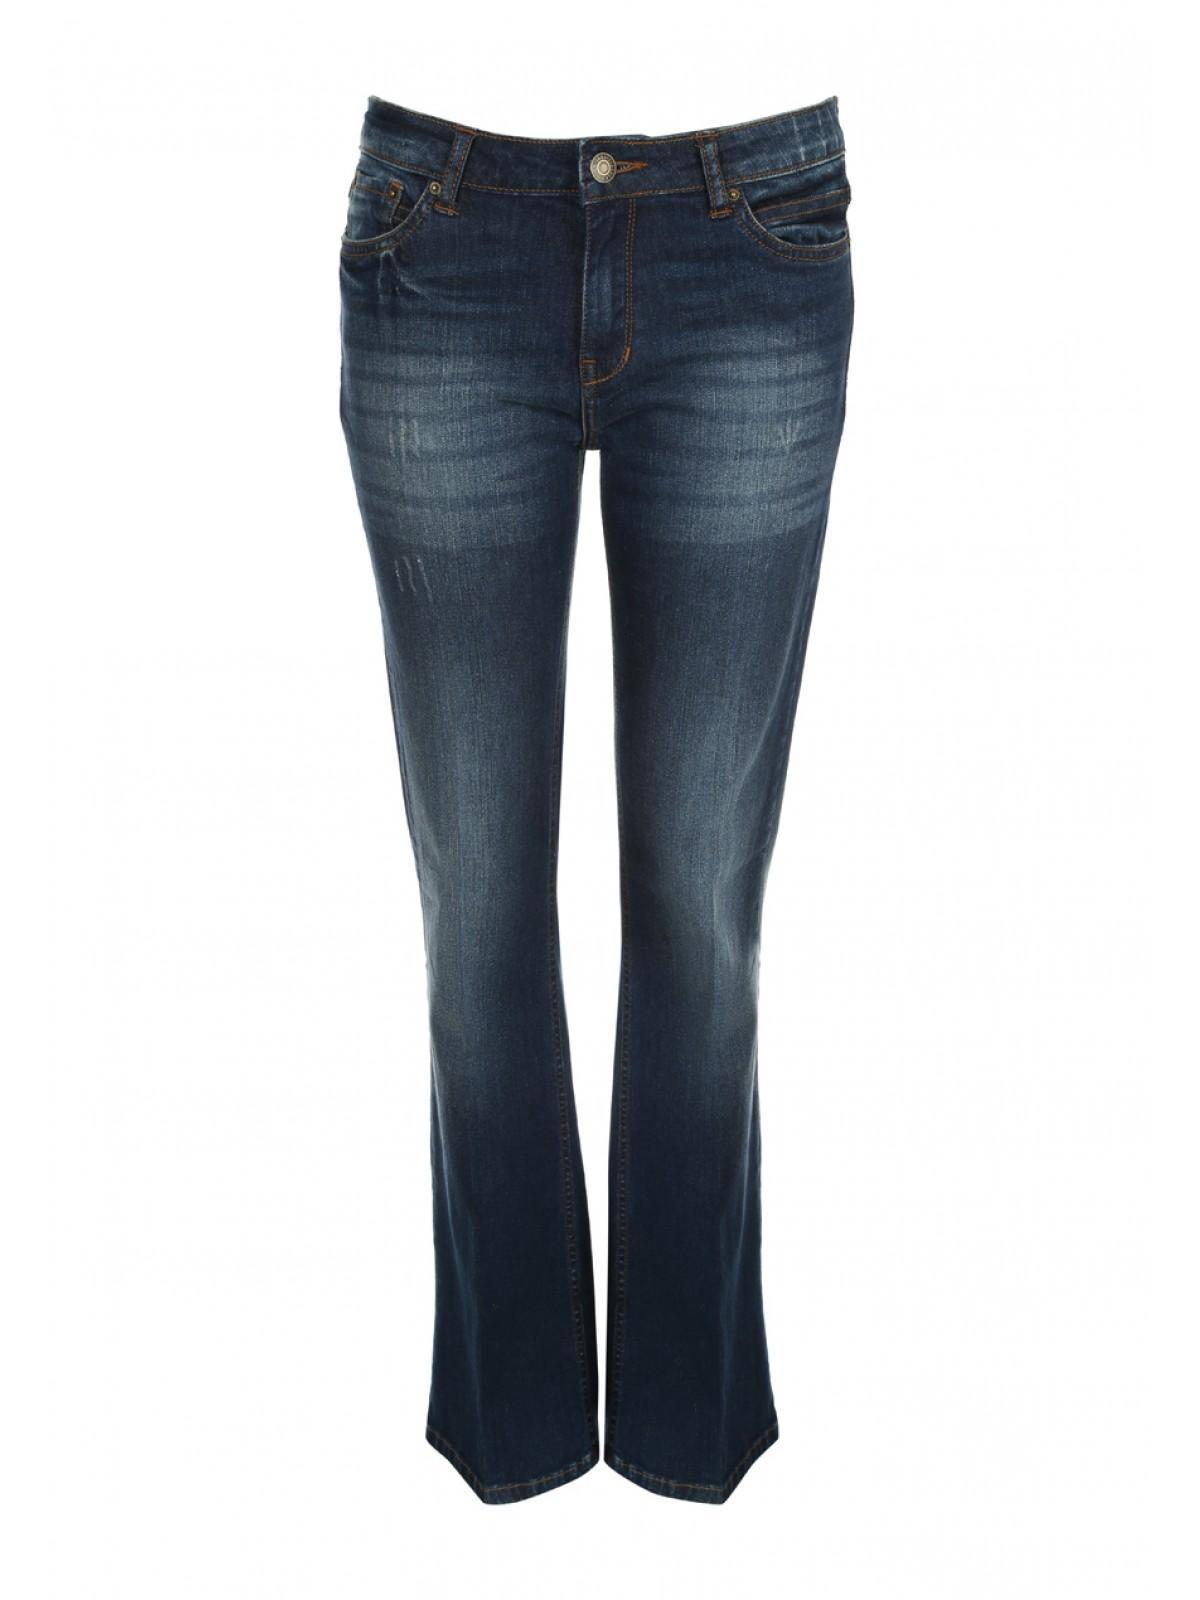 Womens Kick Flare Jeans | Peacocks